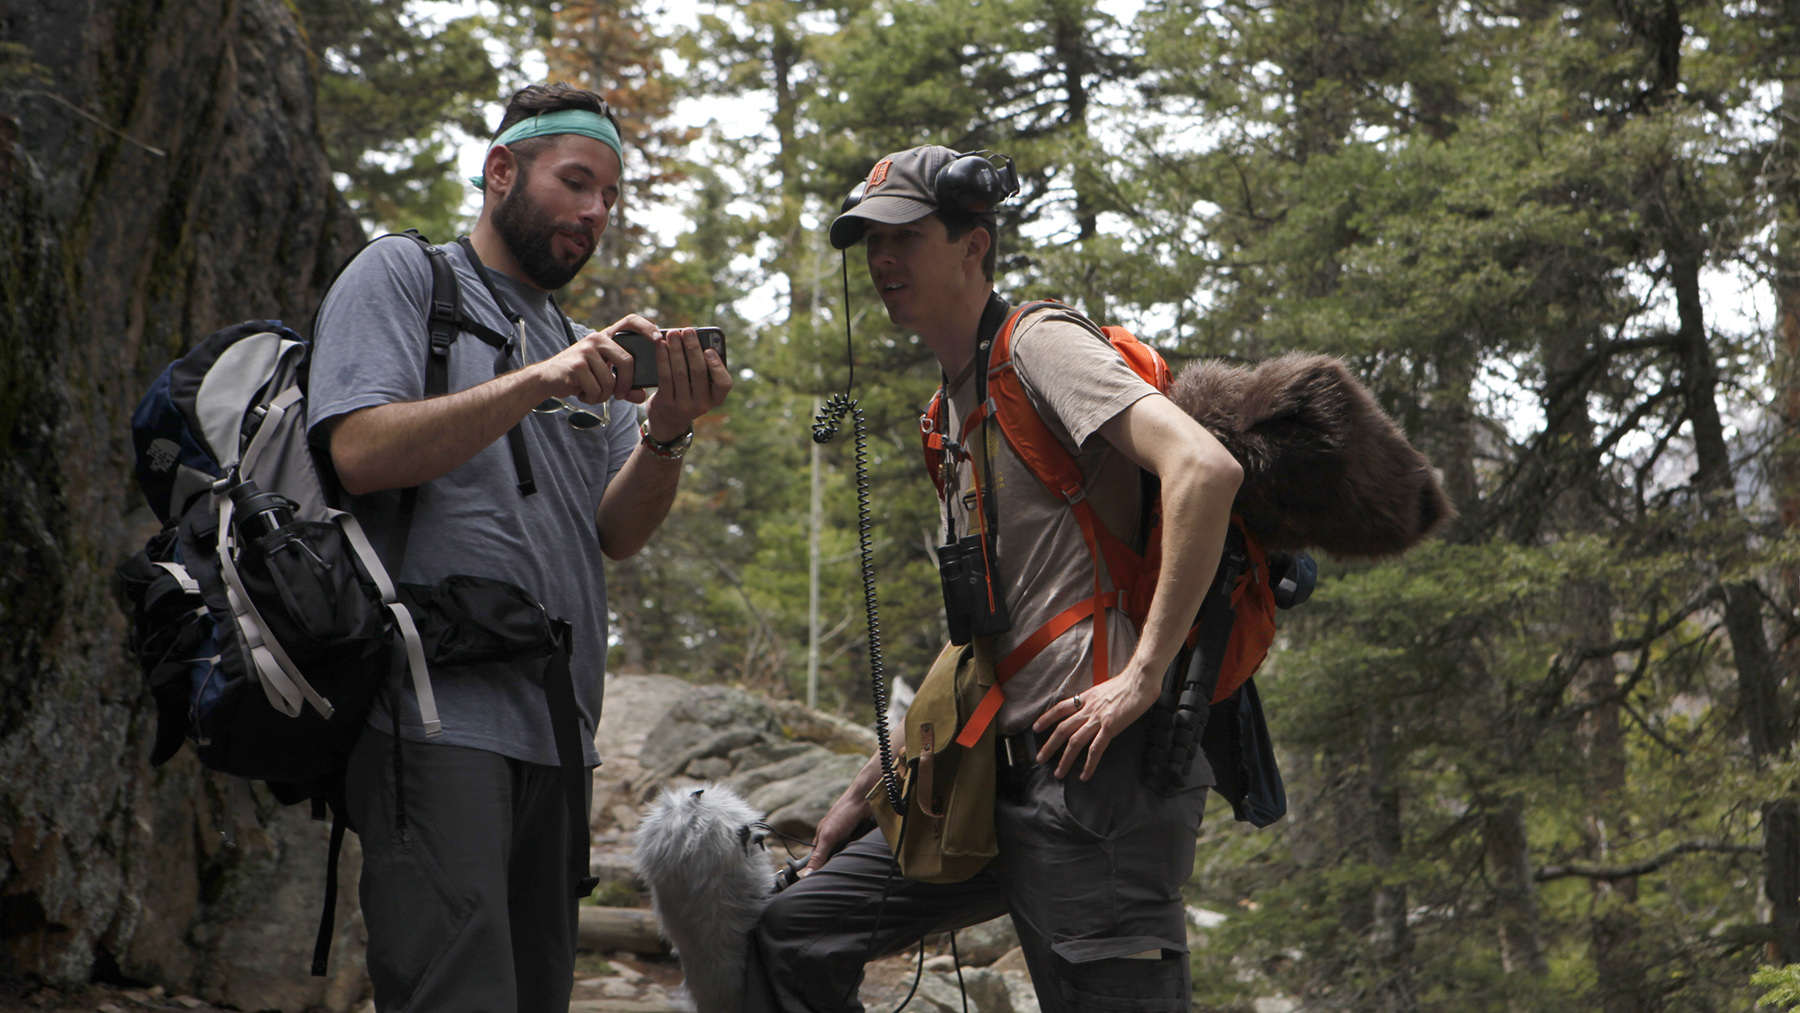 Previewing footage with Jacob Jacobson of the National Park Service